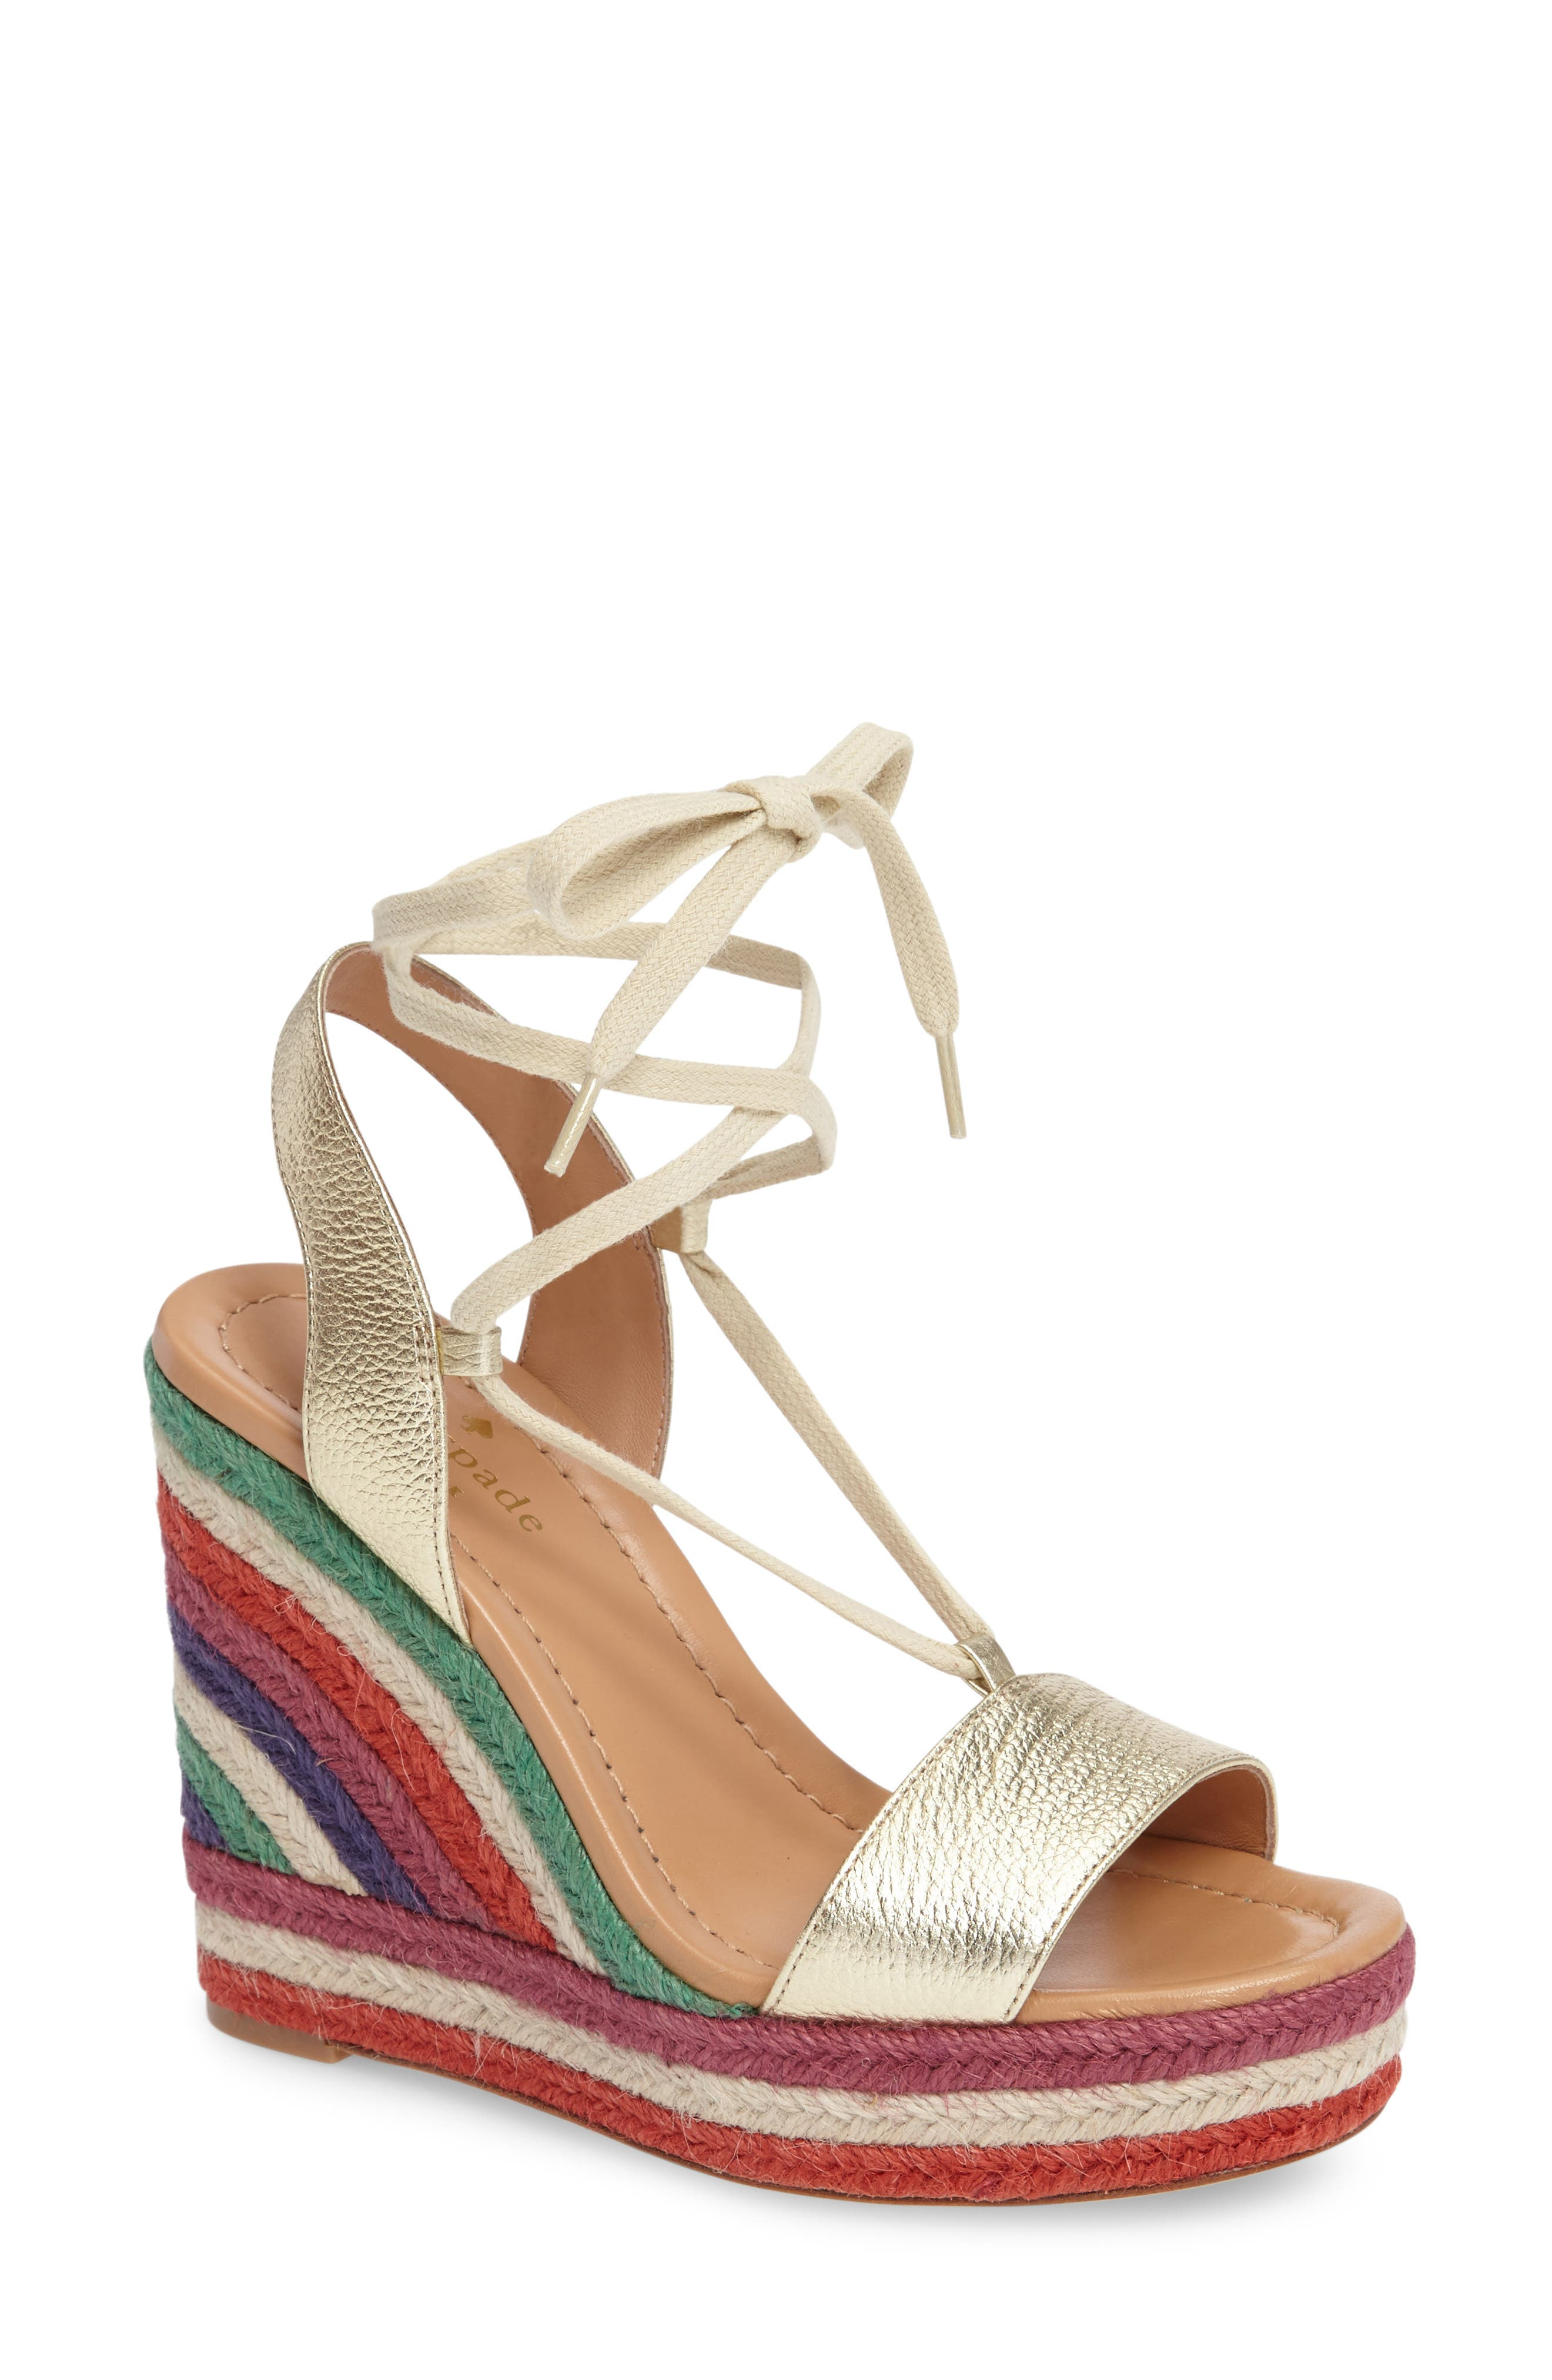 Main Image - kate spade new york daisy too platform wedge espadrille (Women)